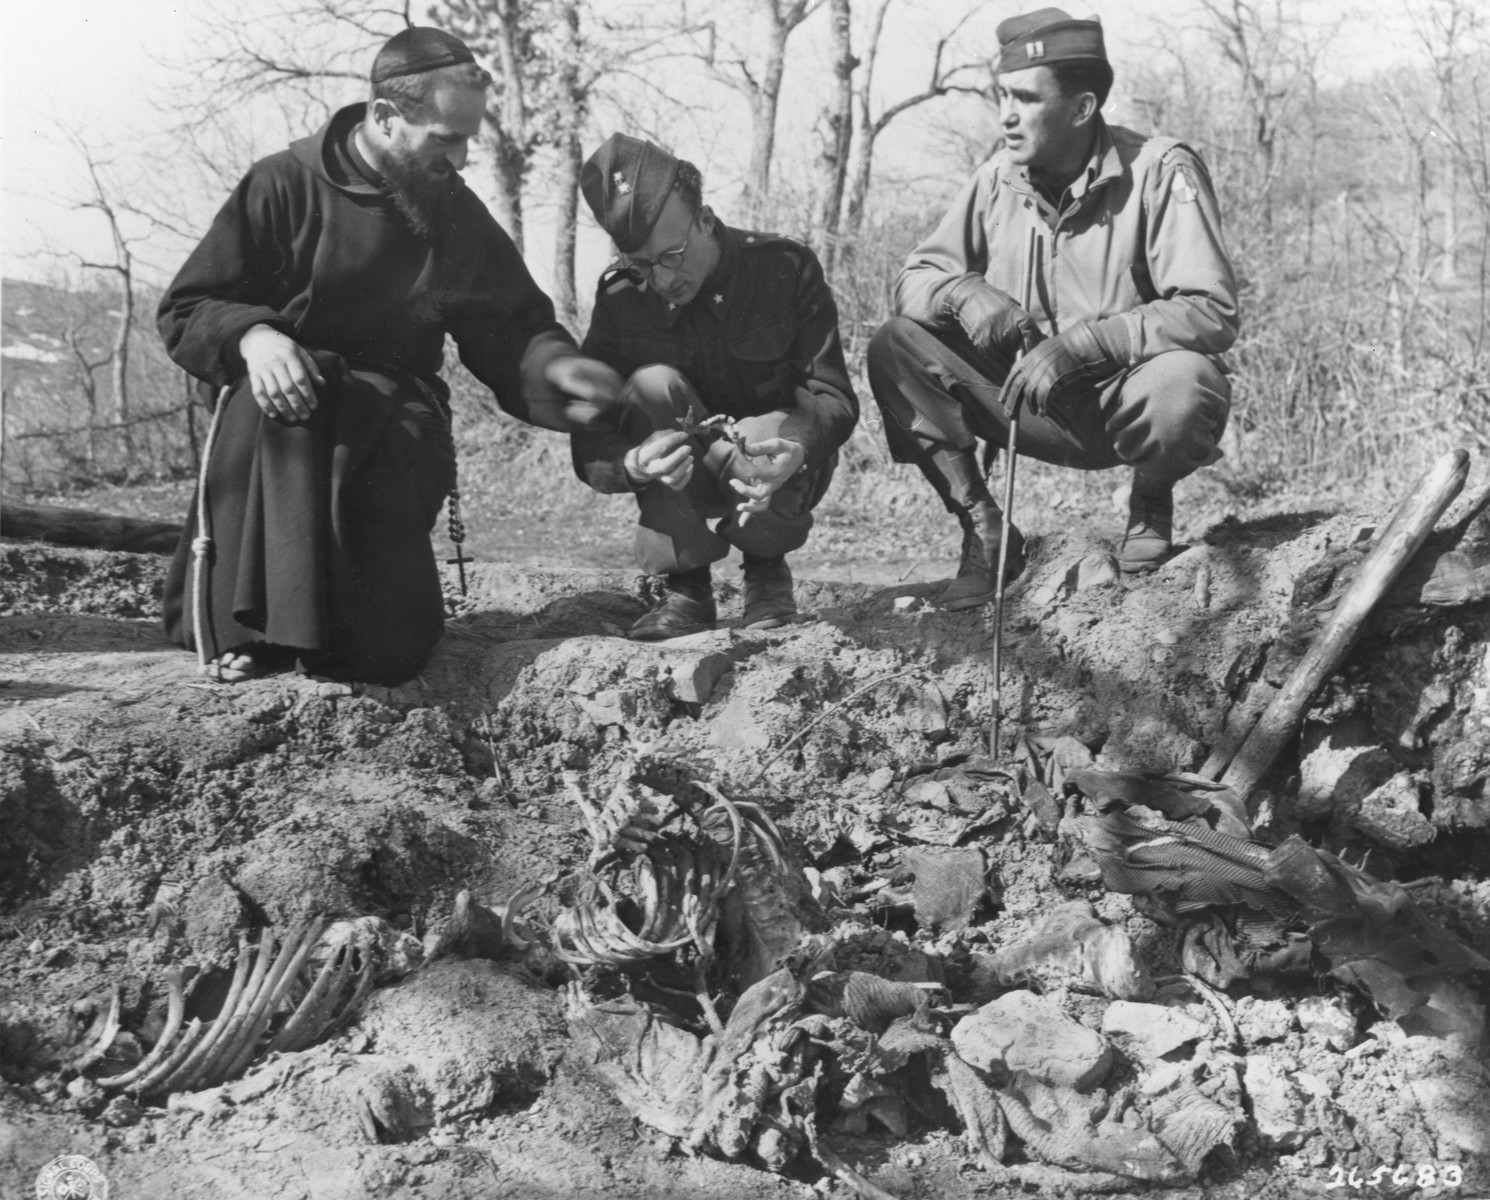 Padre Enrico Farneti, a local priest, Chaplain Enrico Dino, Italian Army, and Capt. Labre Garcia, the investigating officer from the U.S. Military Government, examine a grave containing the remains of at least two Italian civilians killed and burned by German forces.